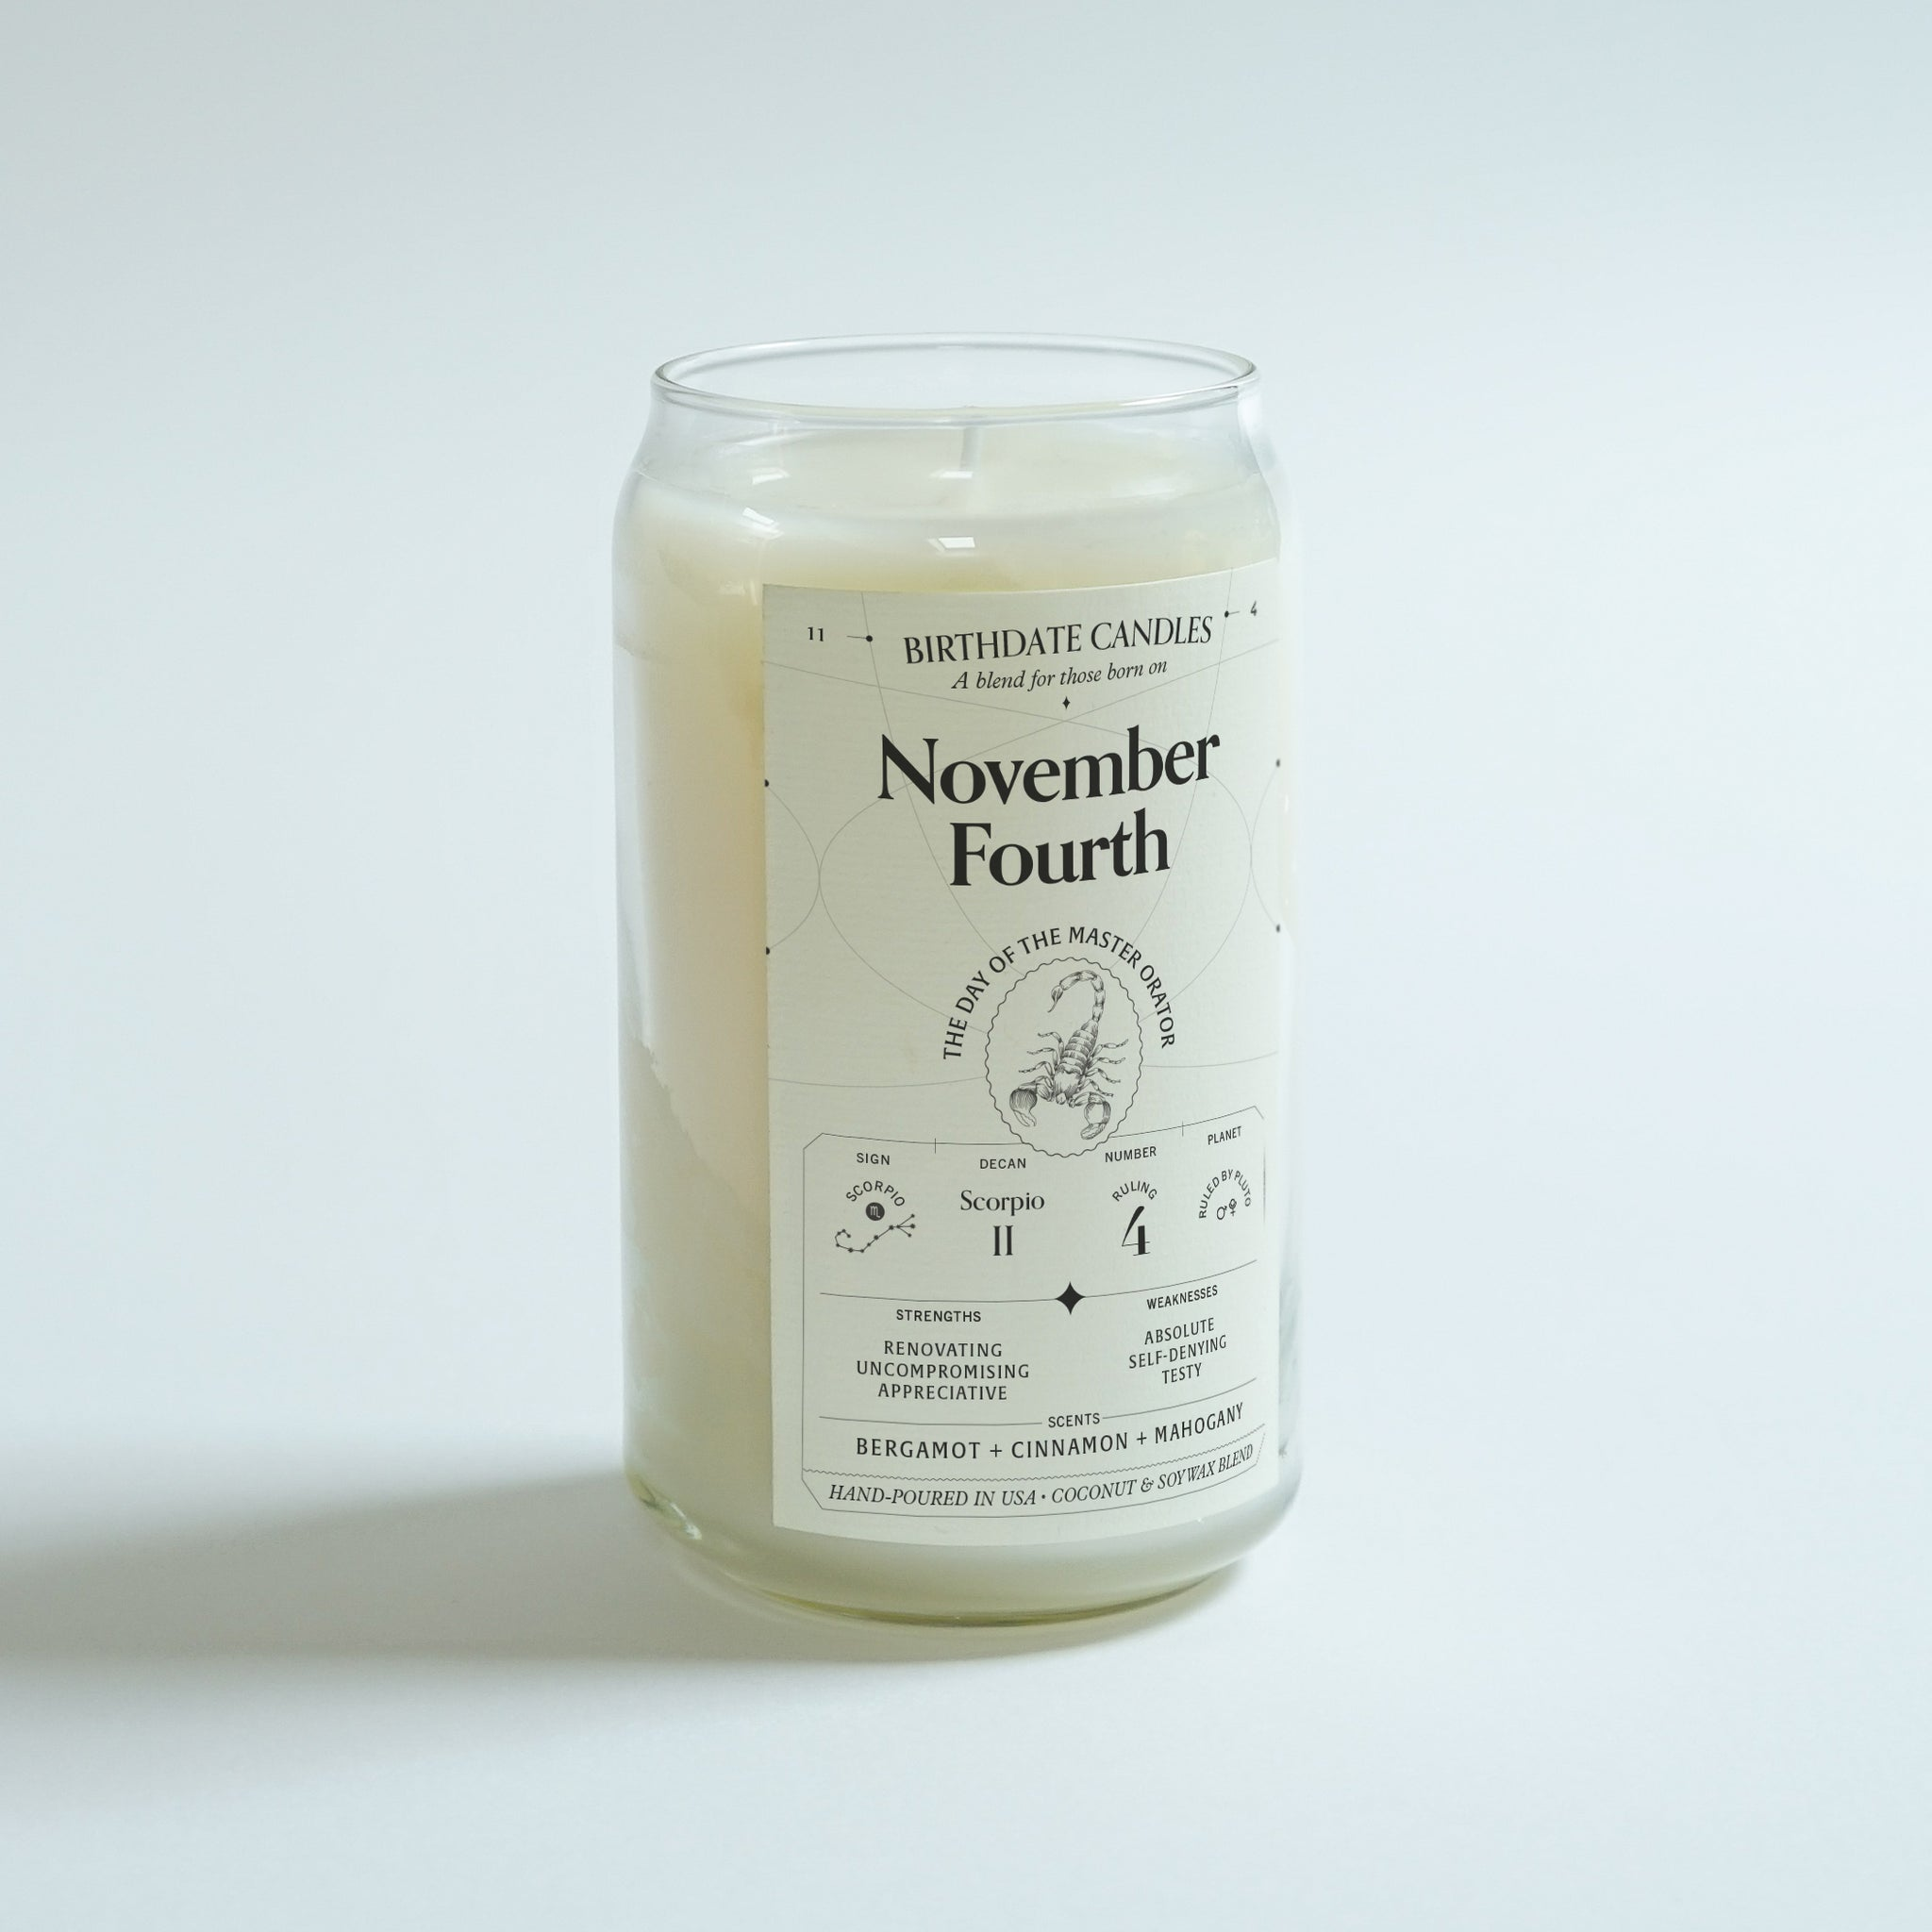 The November Fourth Birthday Candle